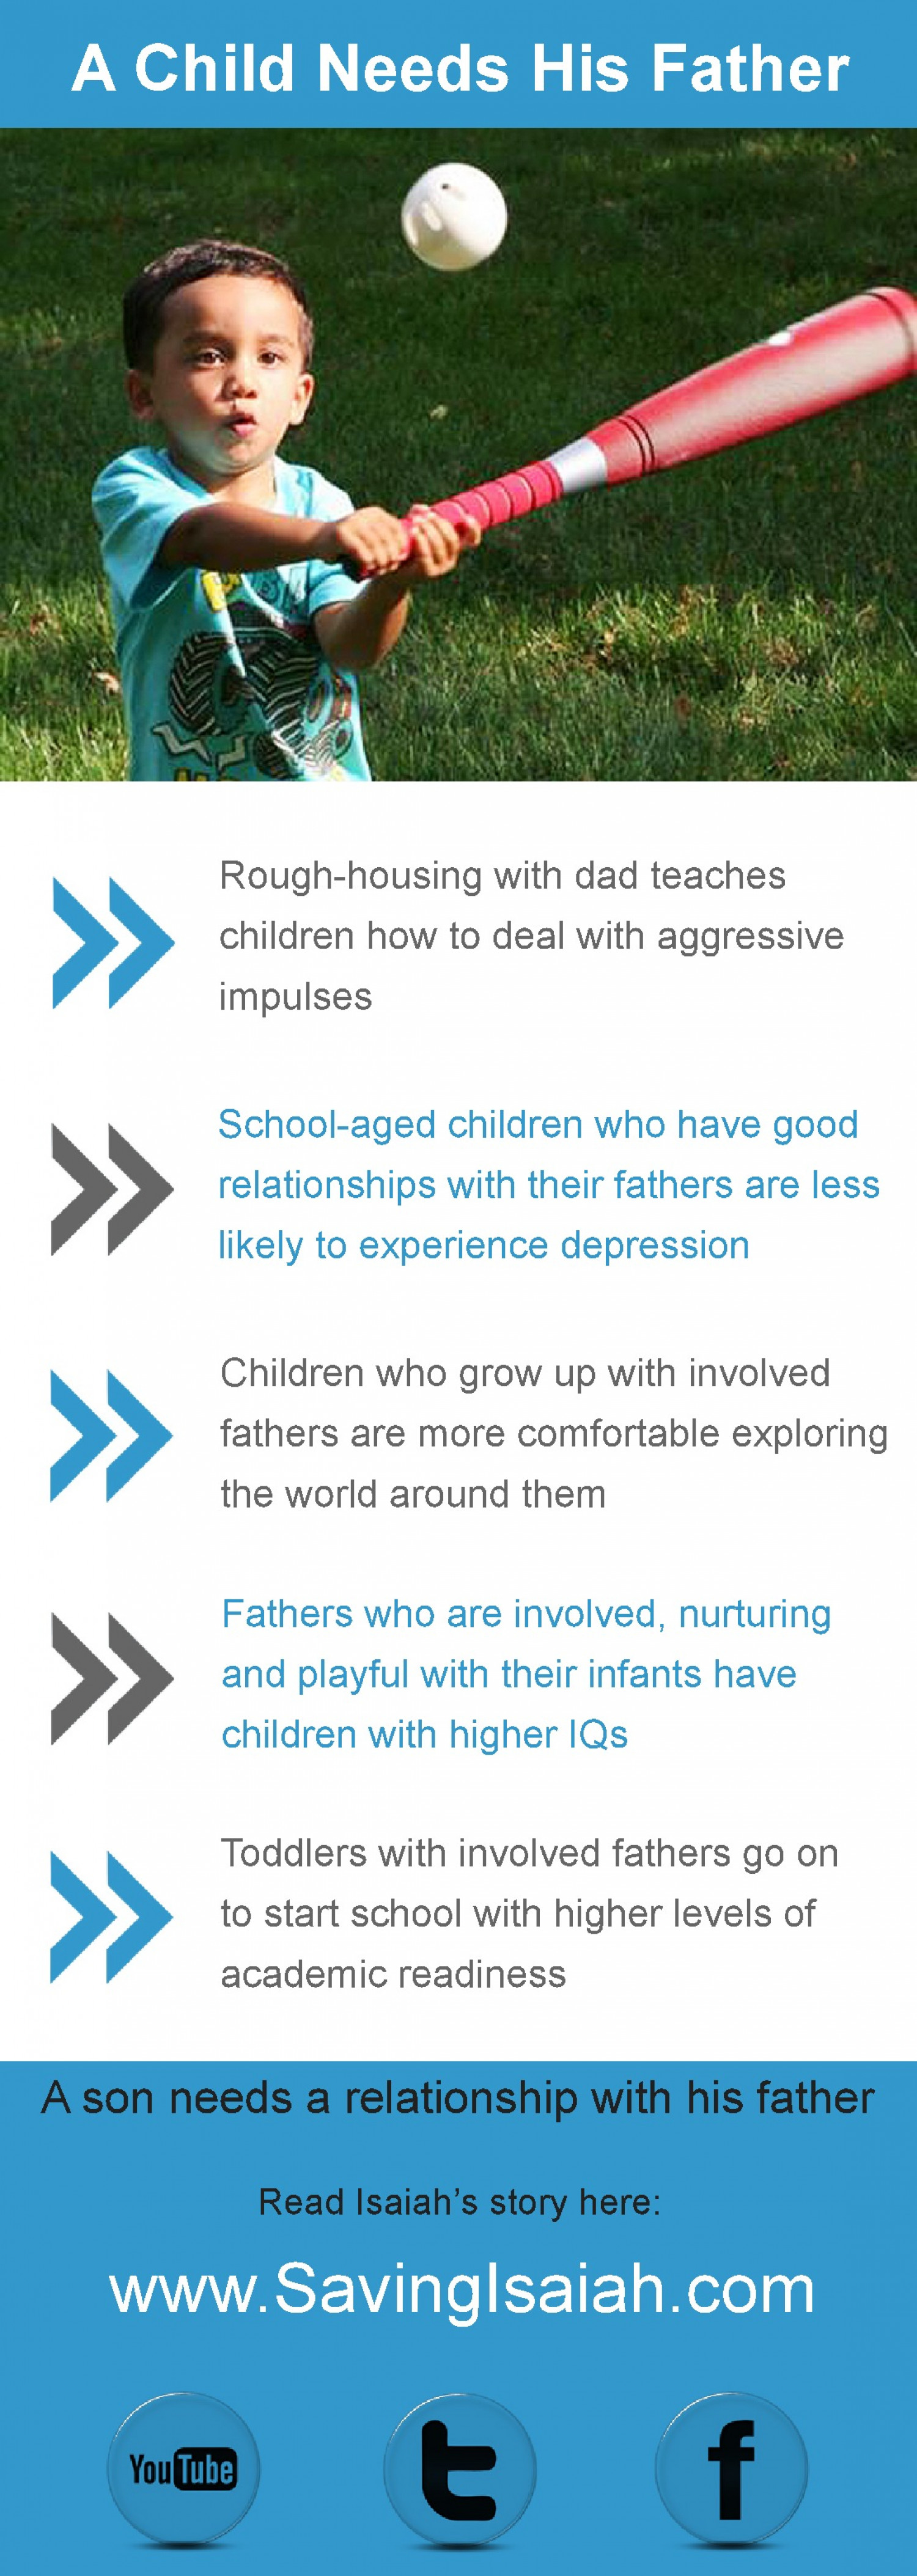 A Child Needs His Father Infographic